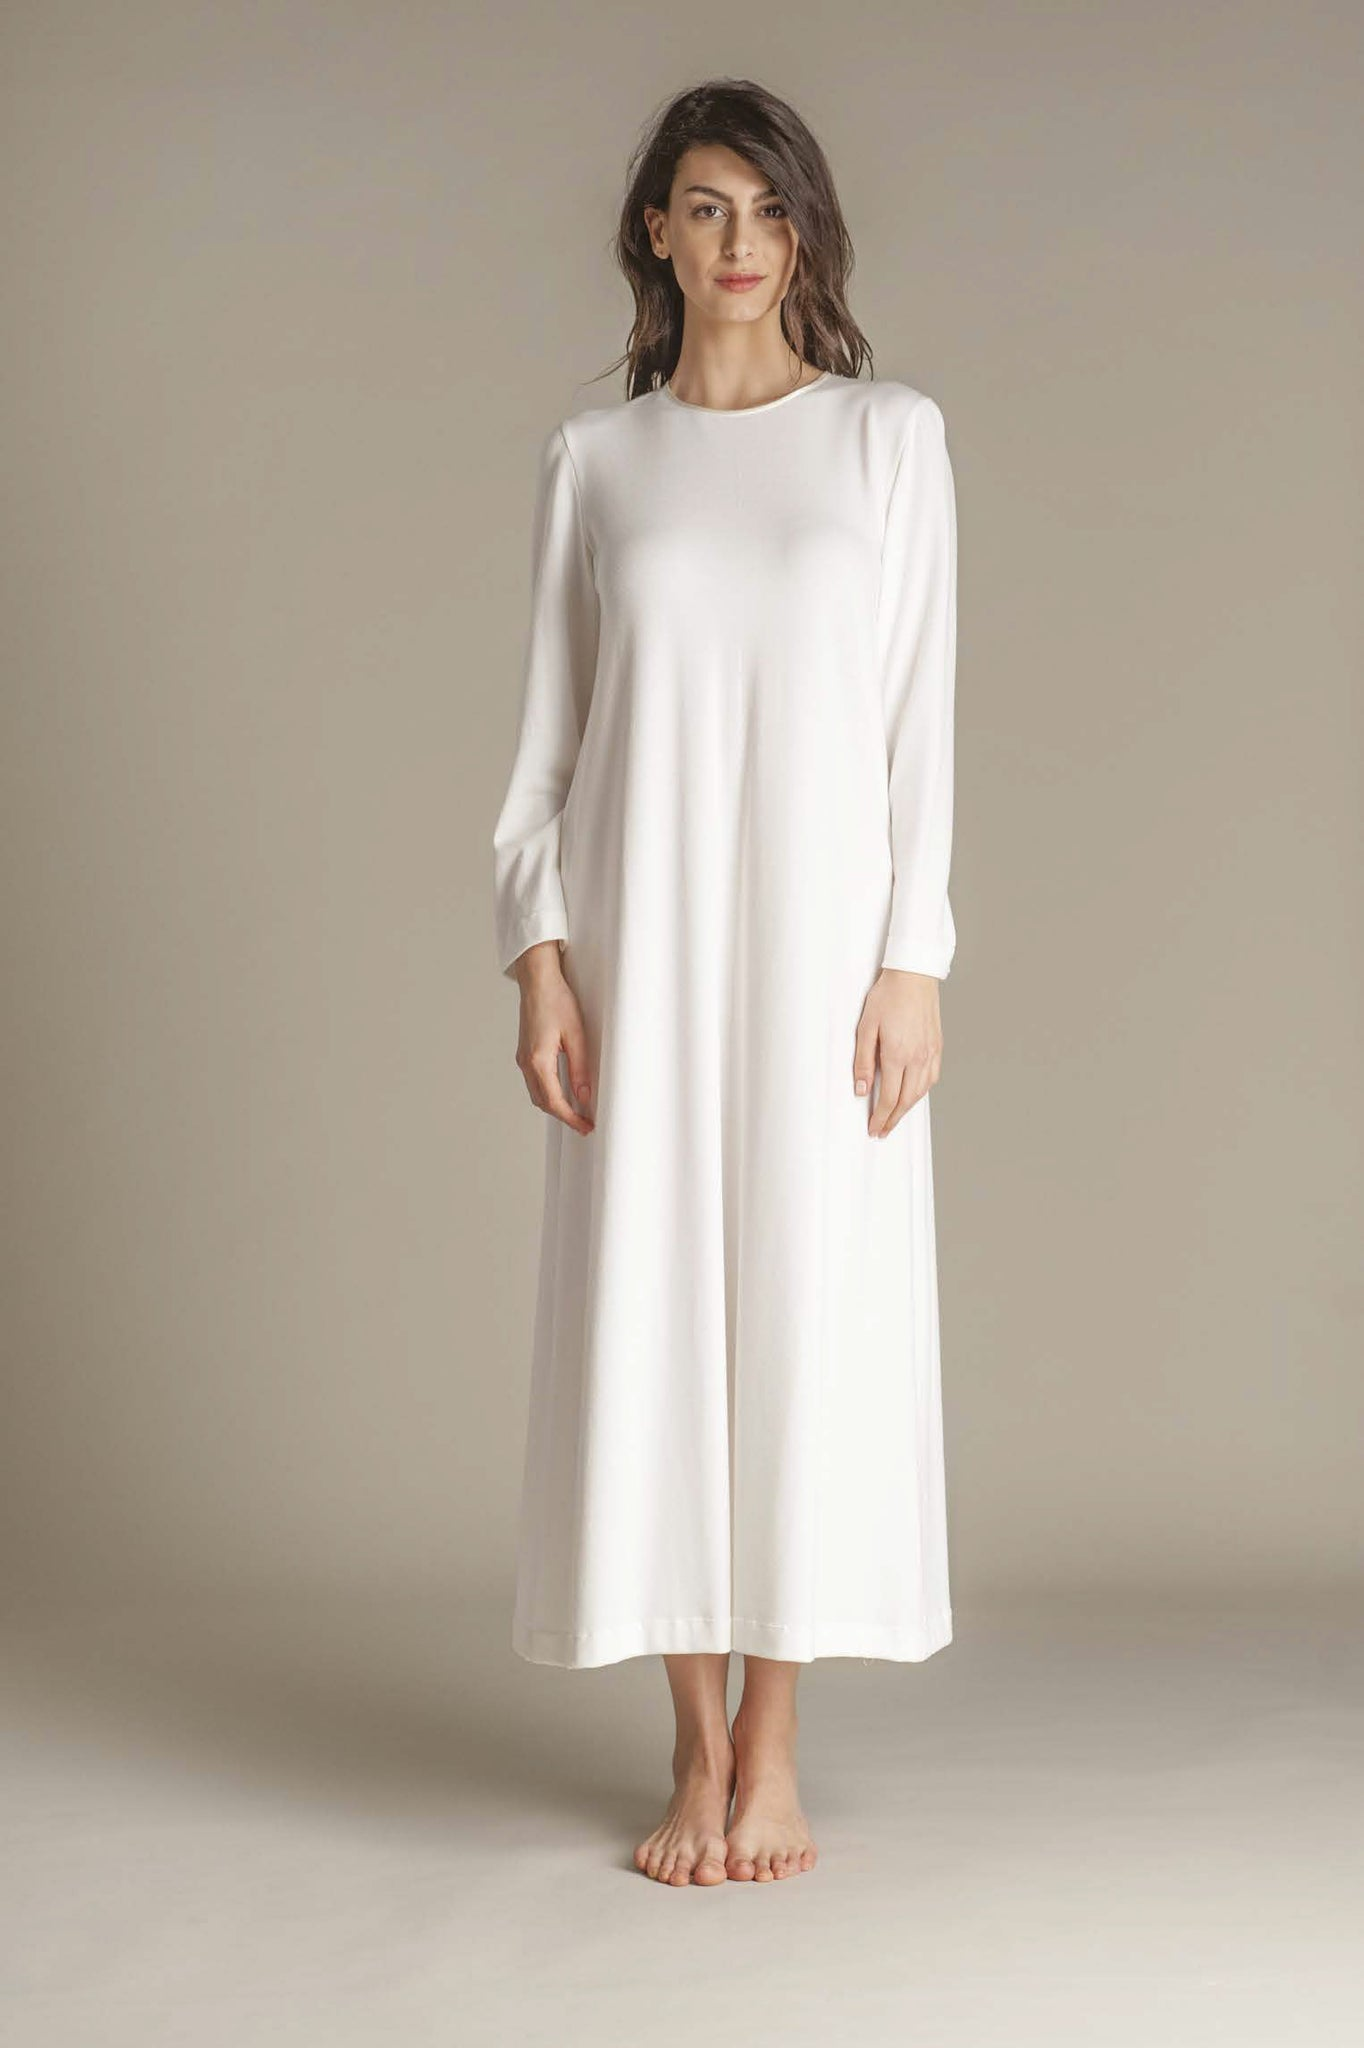 Jasmine - Jersey nightgown